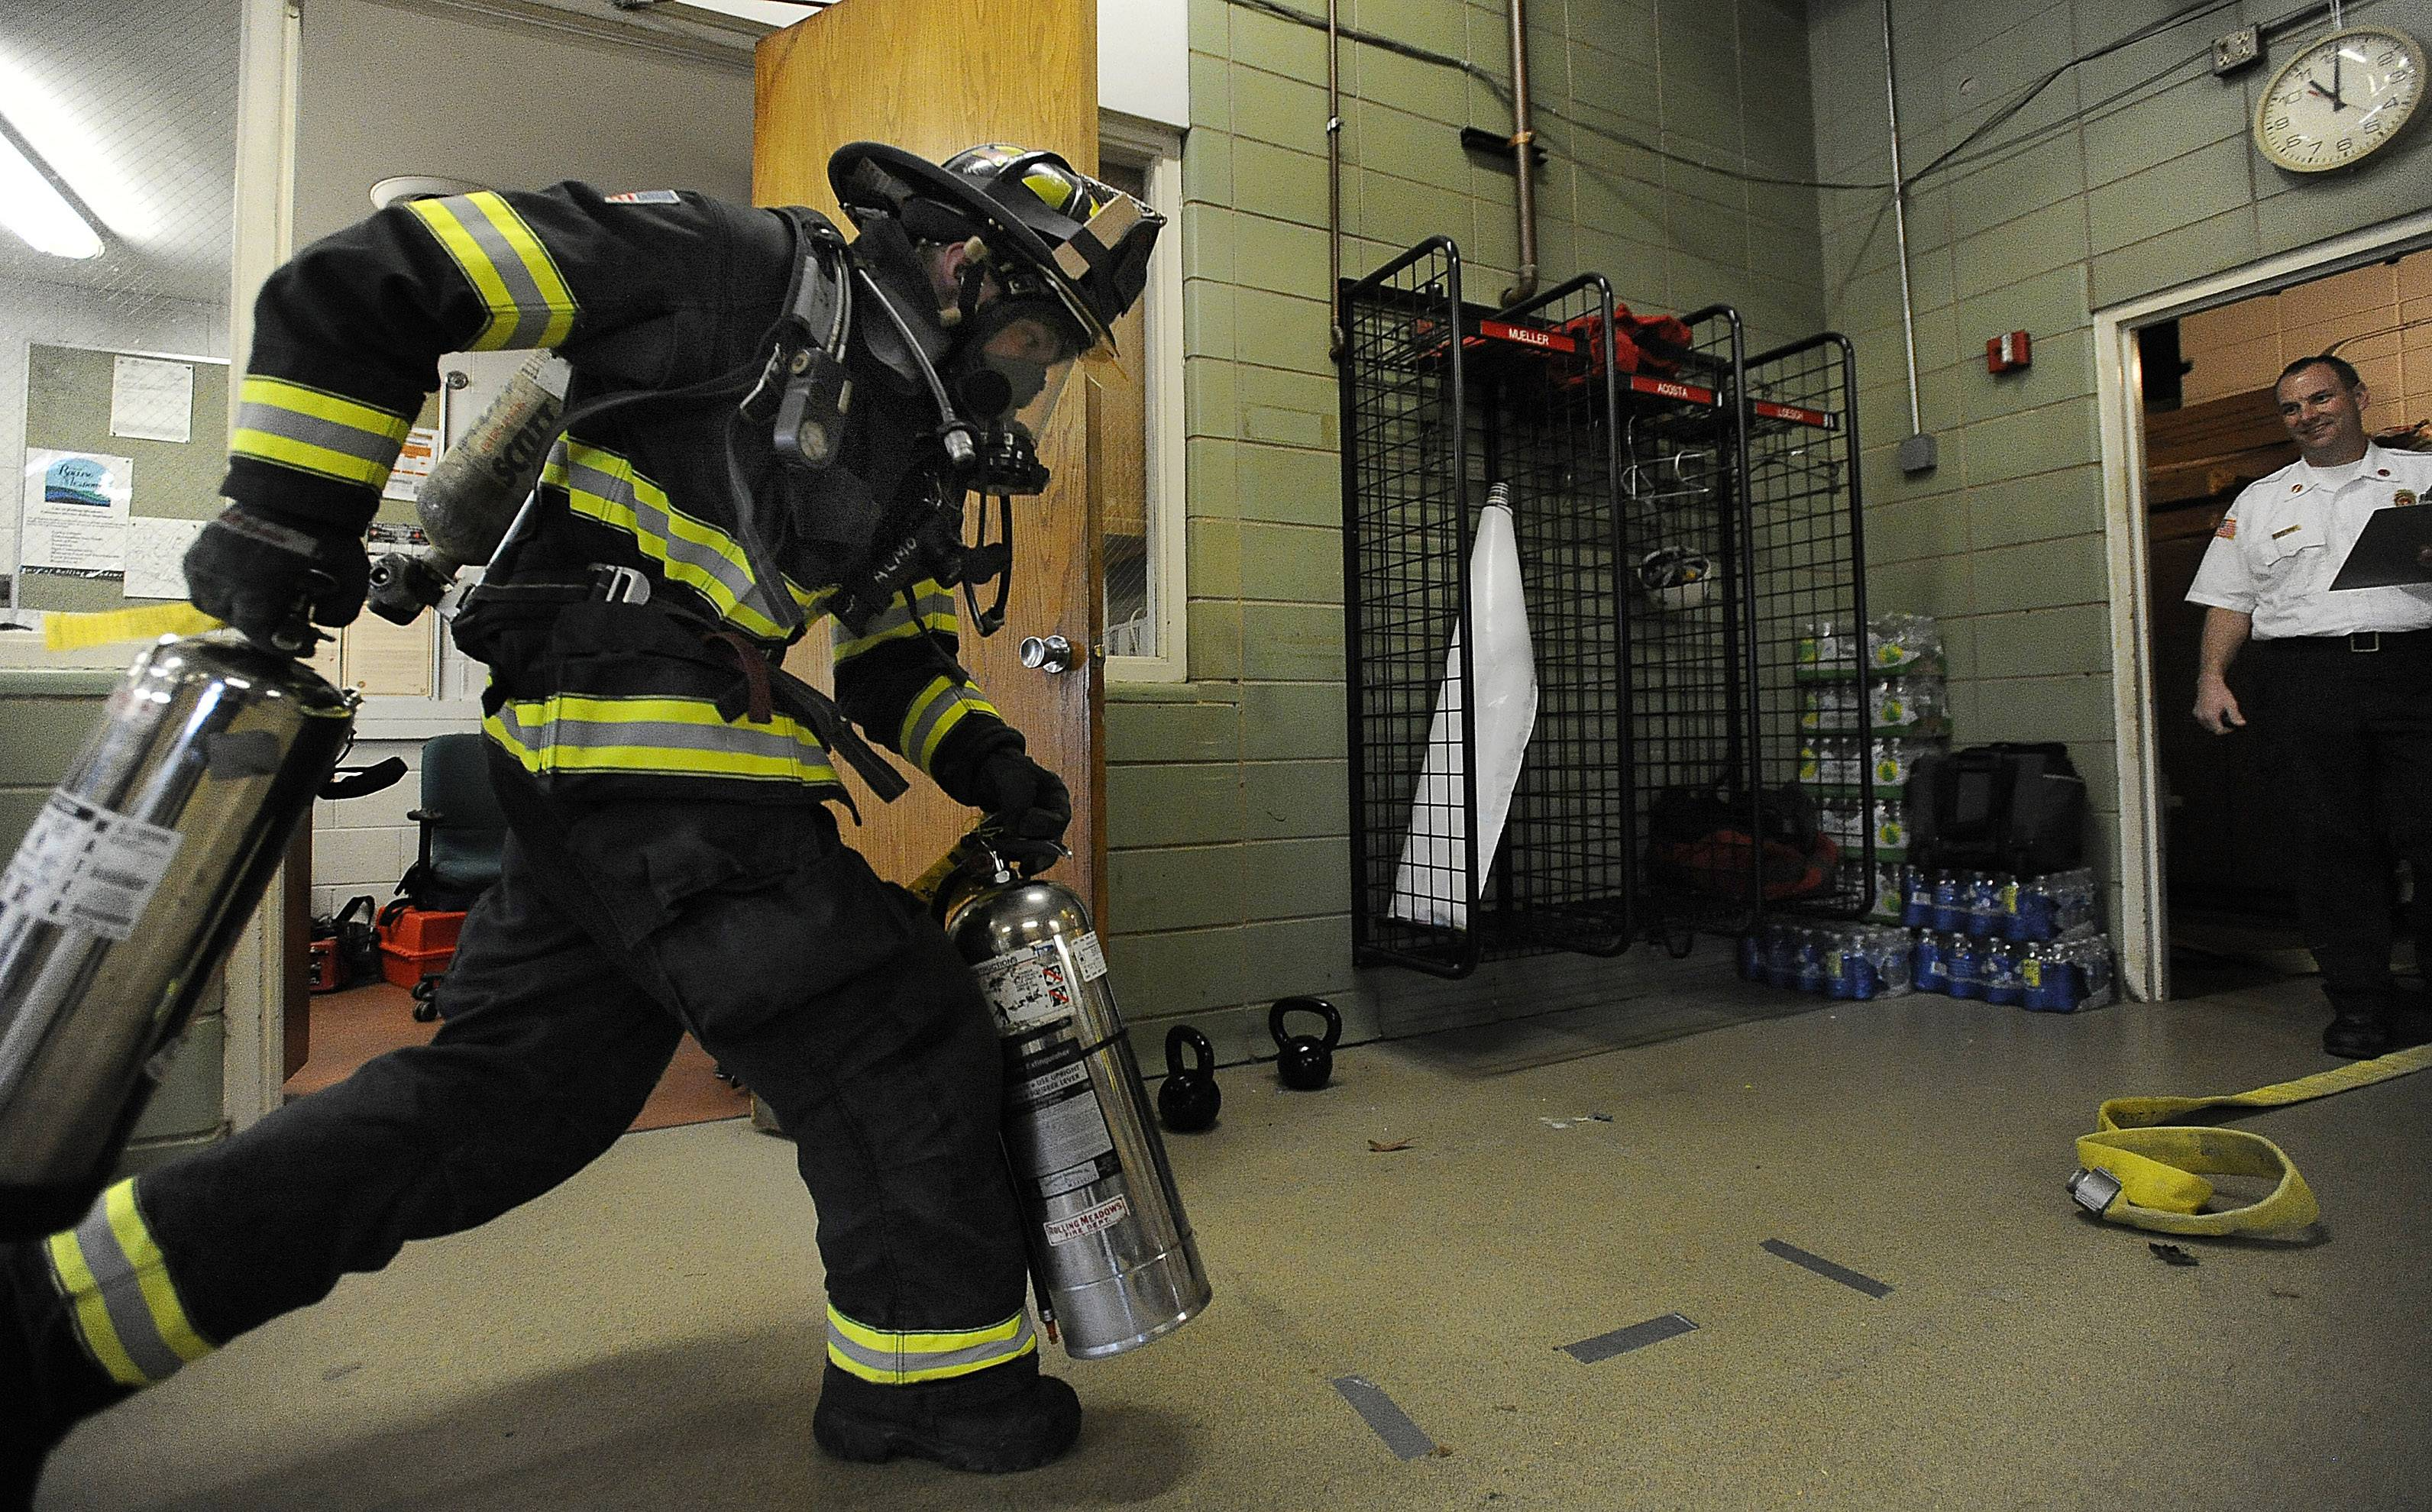 Gurnee has been awarded a $229,000 federal grant to mostly cover the cost of replacing 14-year-old air packs for firefighters. Rolling Meadows firefighter/paramedic John Loesch Jr. donned a pack for a drill last year.